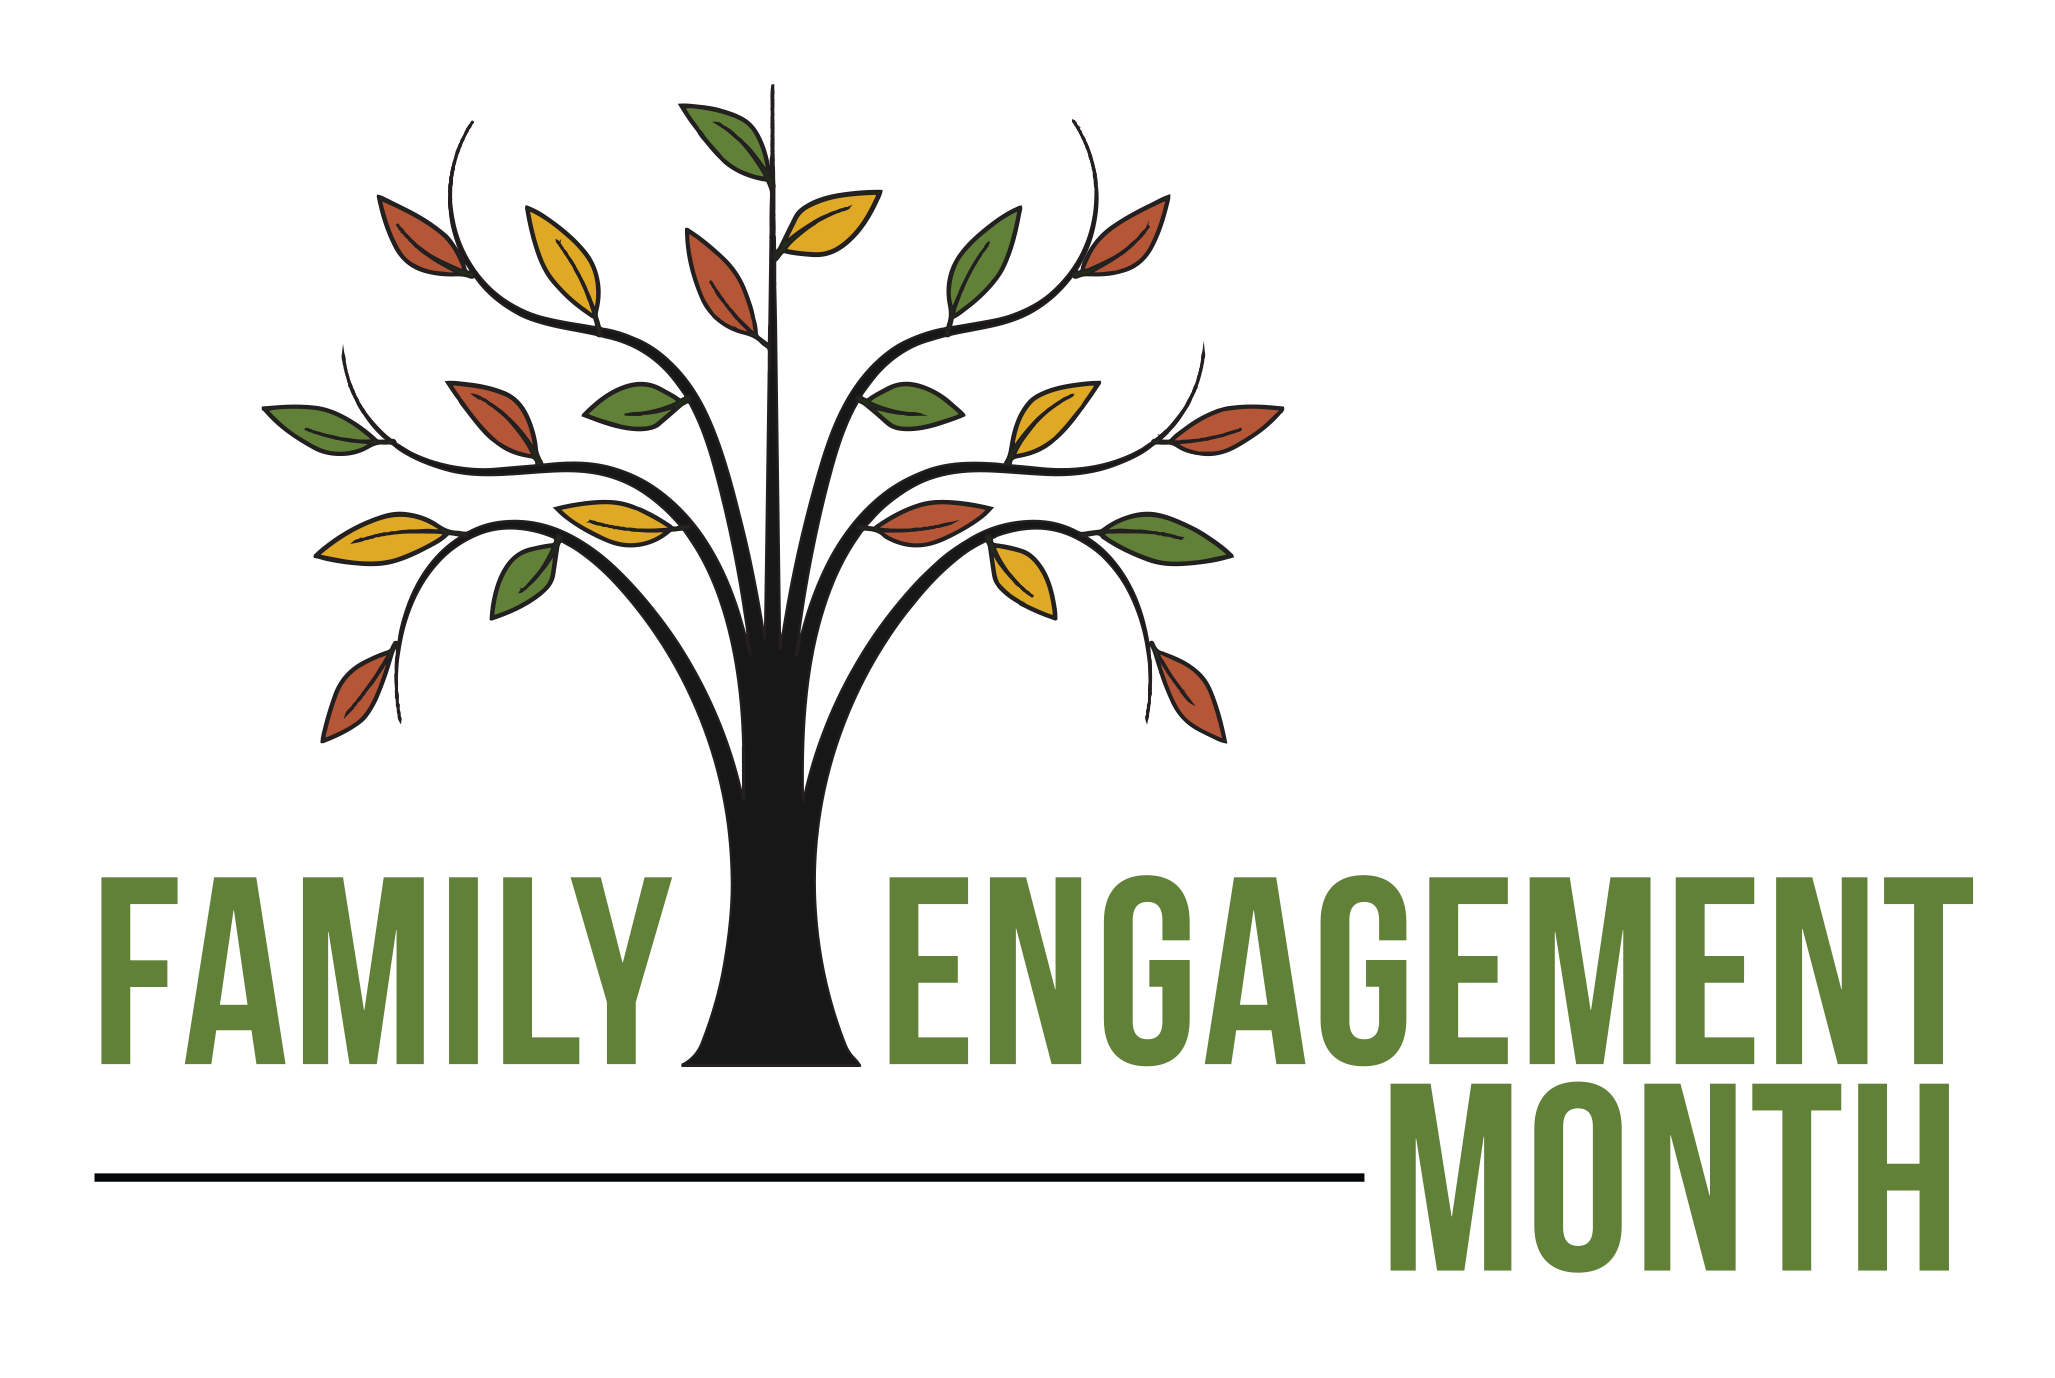 Family tree word clipart png black and white library Family Engagement png black and white library